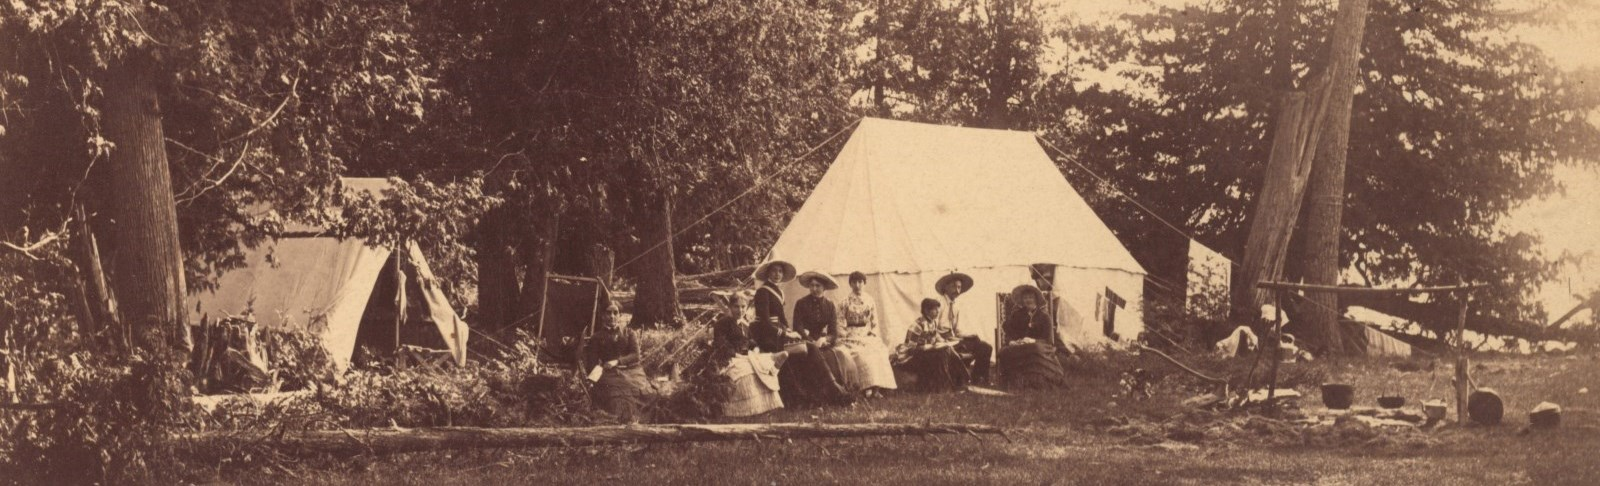 Camping on Rice Lake circa 1900; NCA collection reference 2006-2009-3